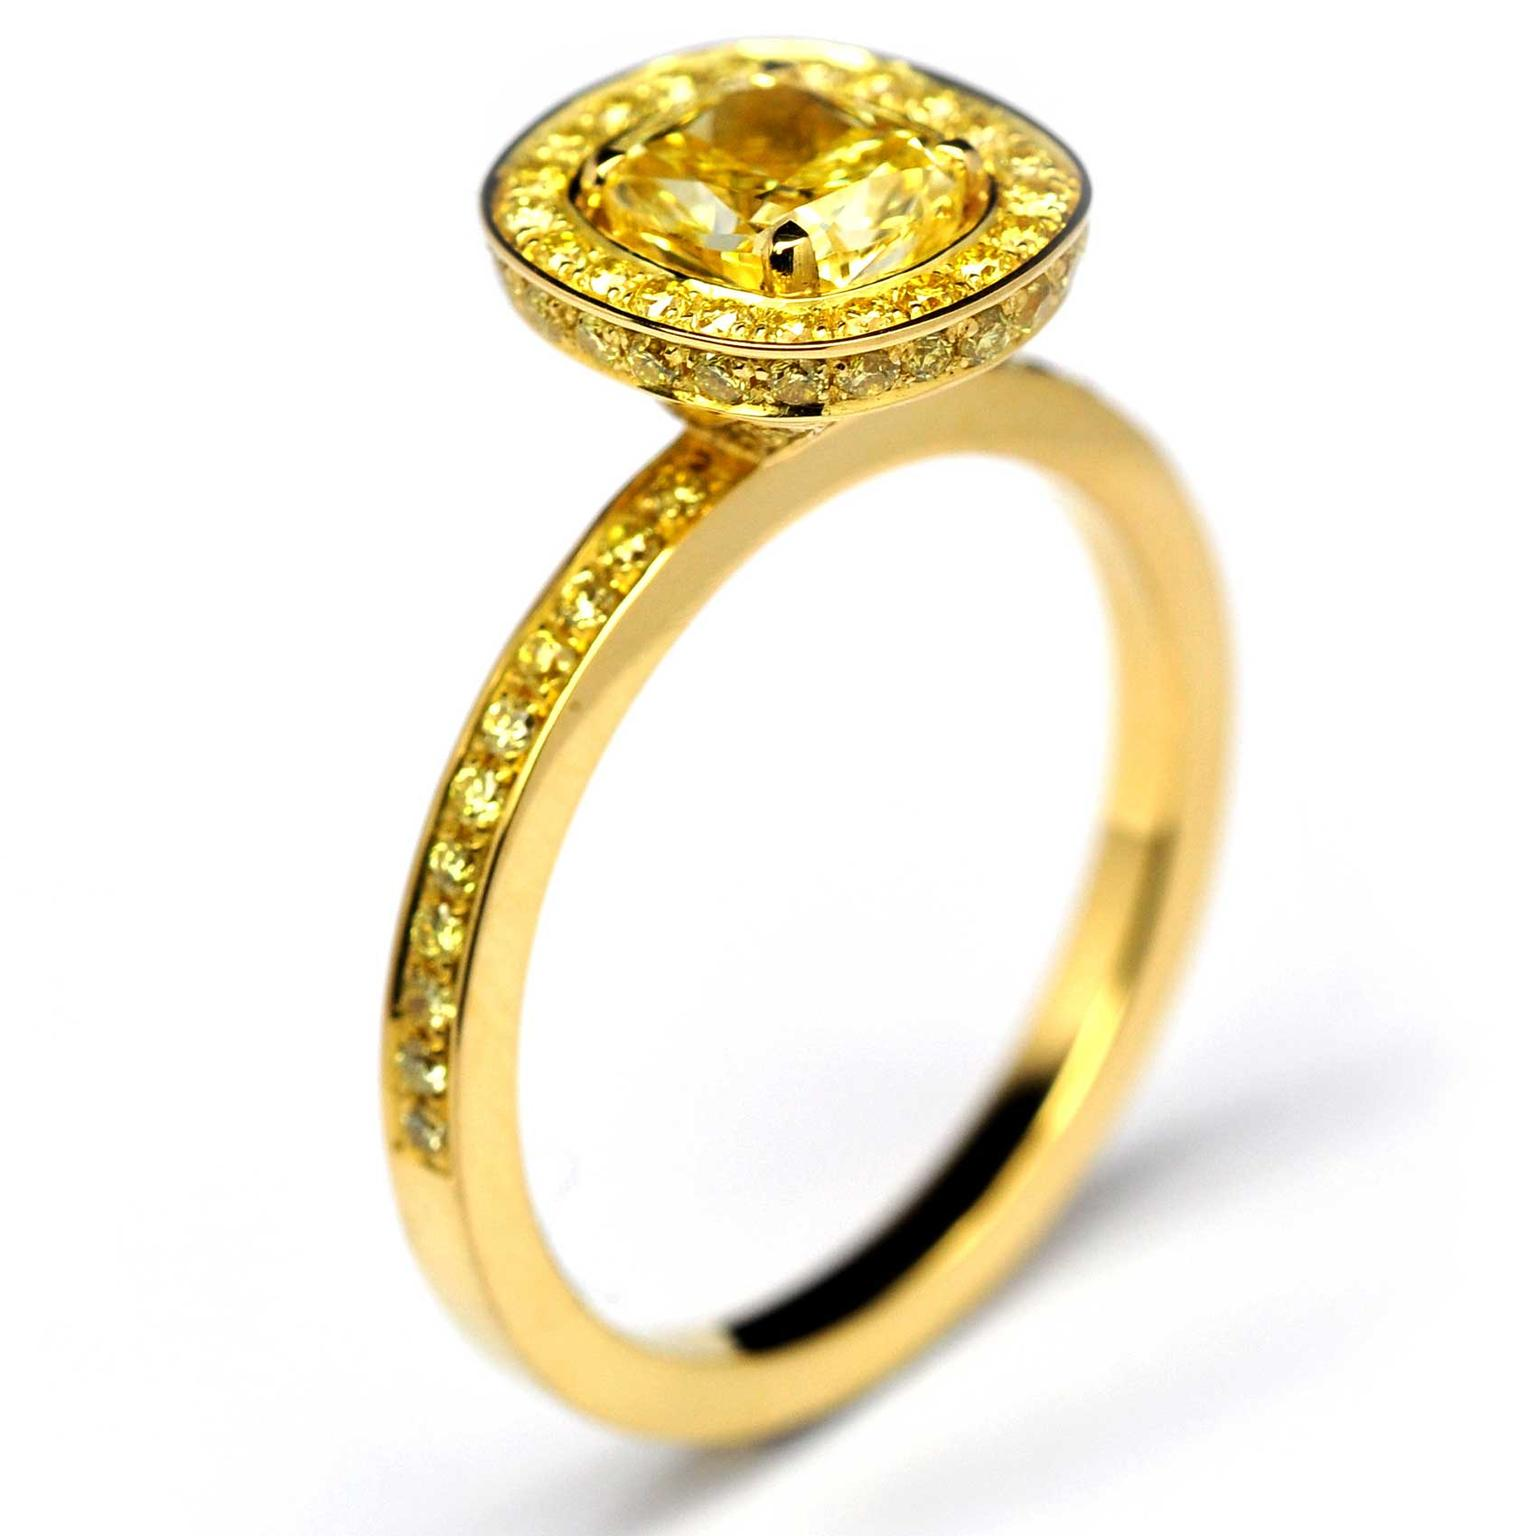 Bespoke Andrew Geoghegan yellow diamond engagement ring